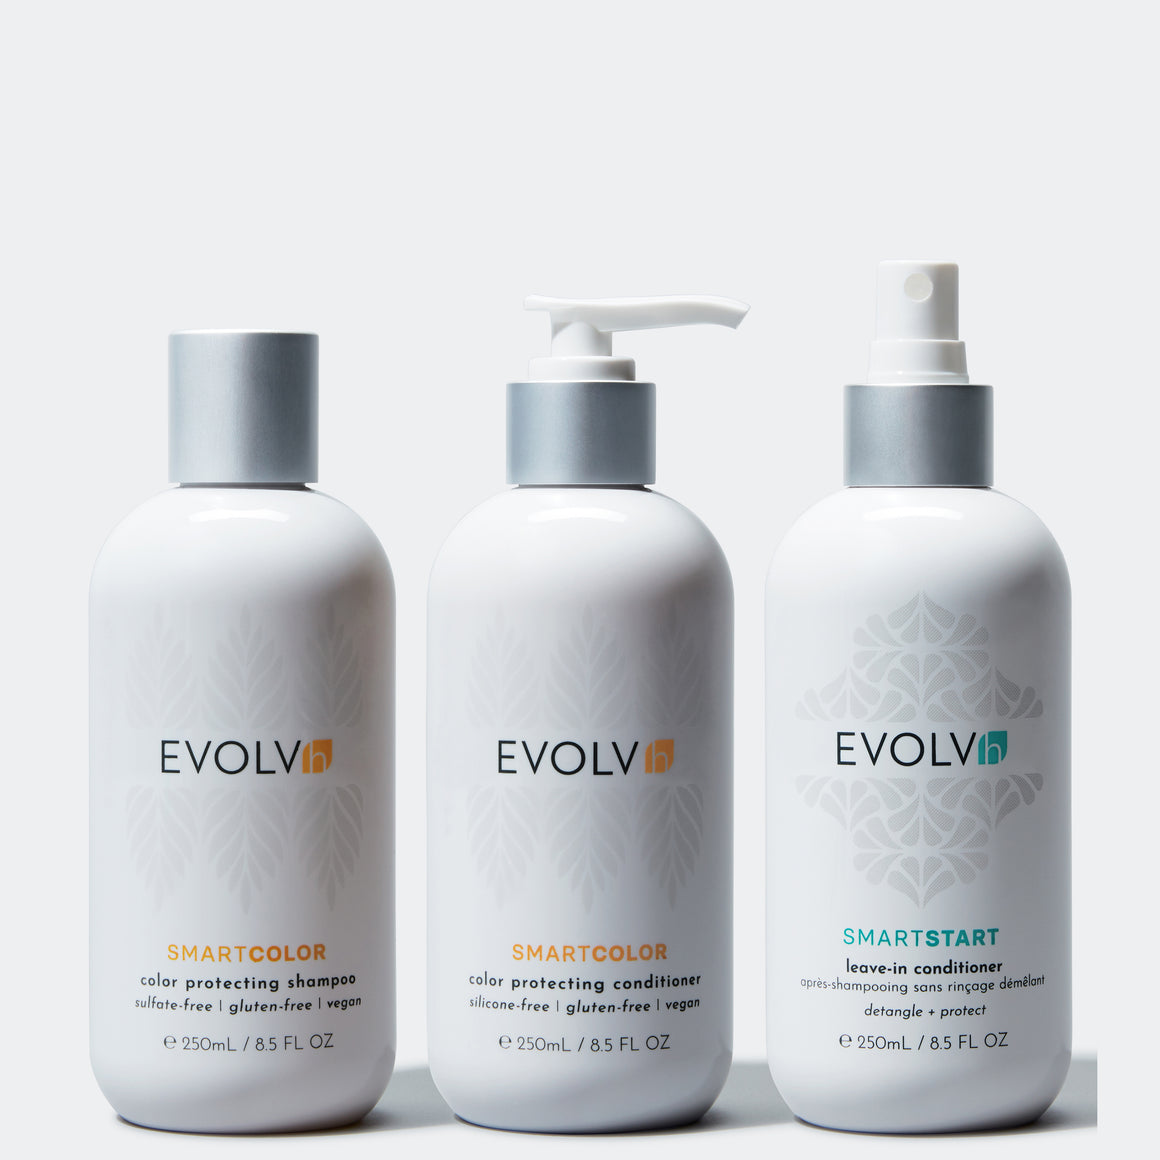 Supreme Color Care - Vibrancy with Anti Fading, SmartColor Clean Non Toxic 3 step system